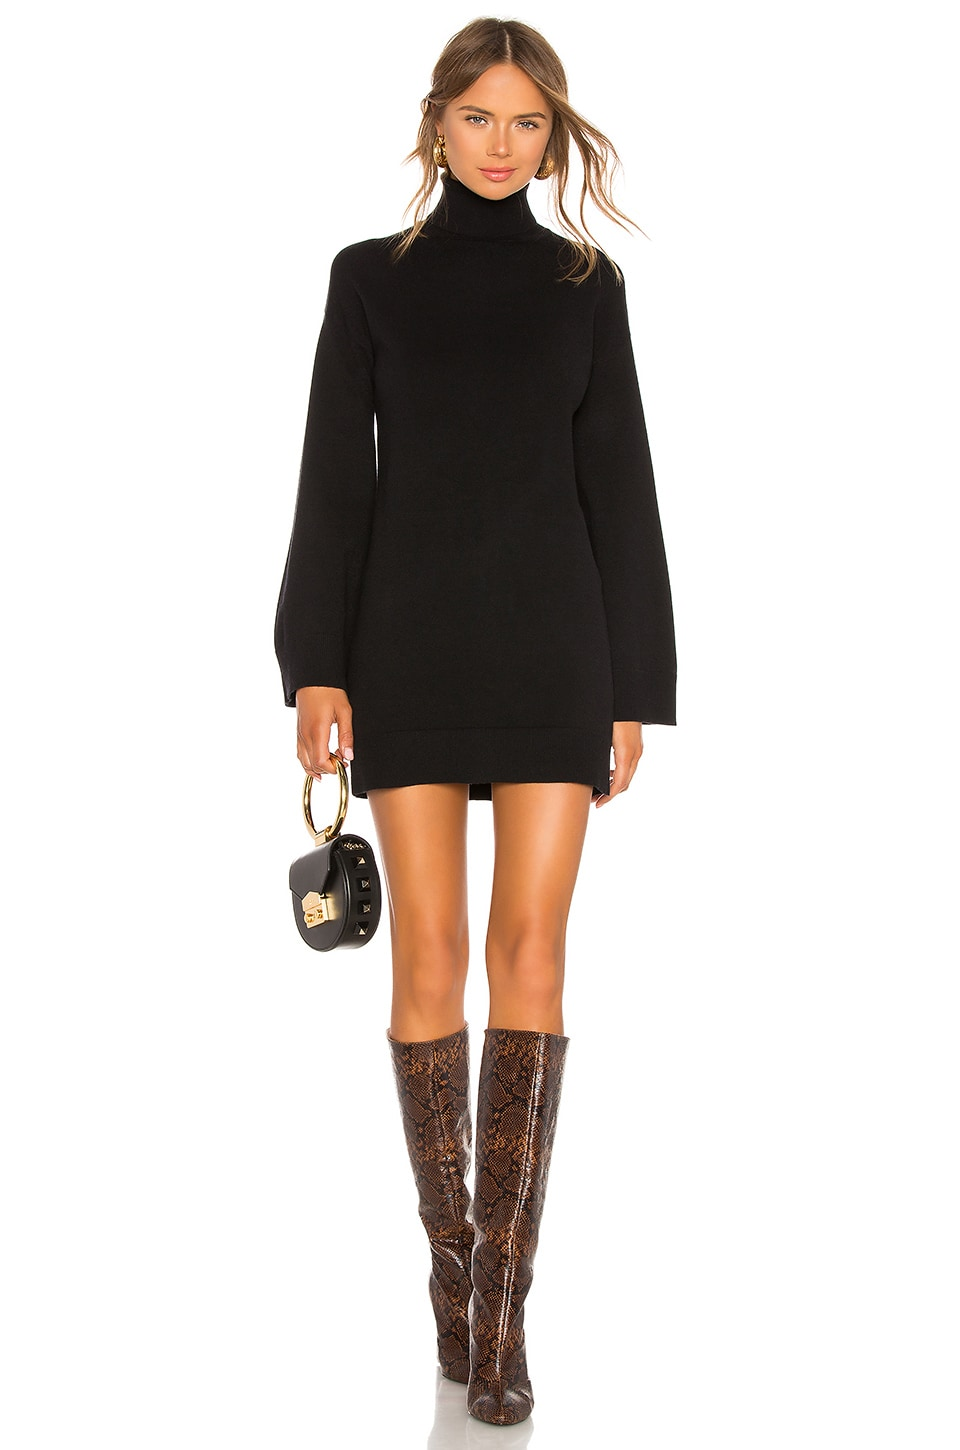 Fallon Sweater Dress             LPA                                                                                                       CA$ 196.79 5